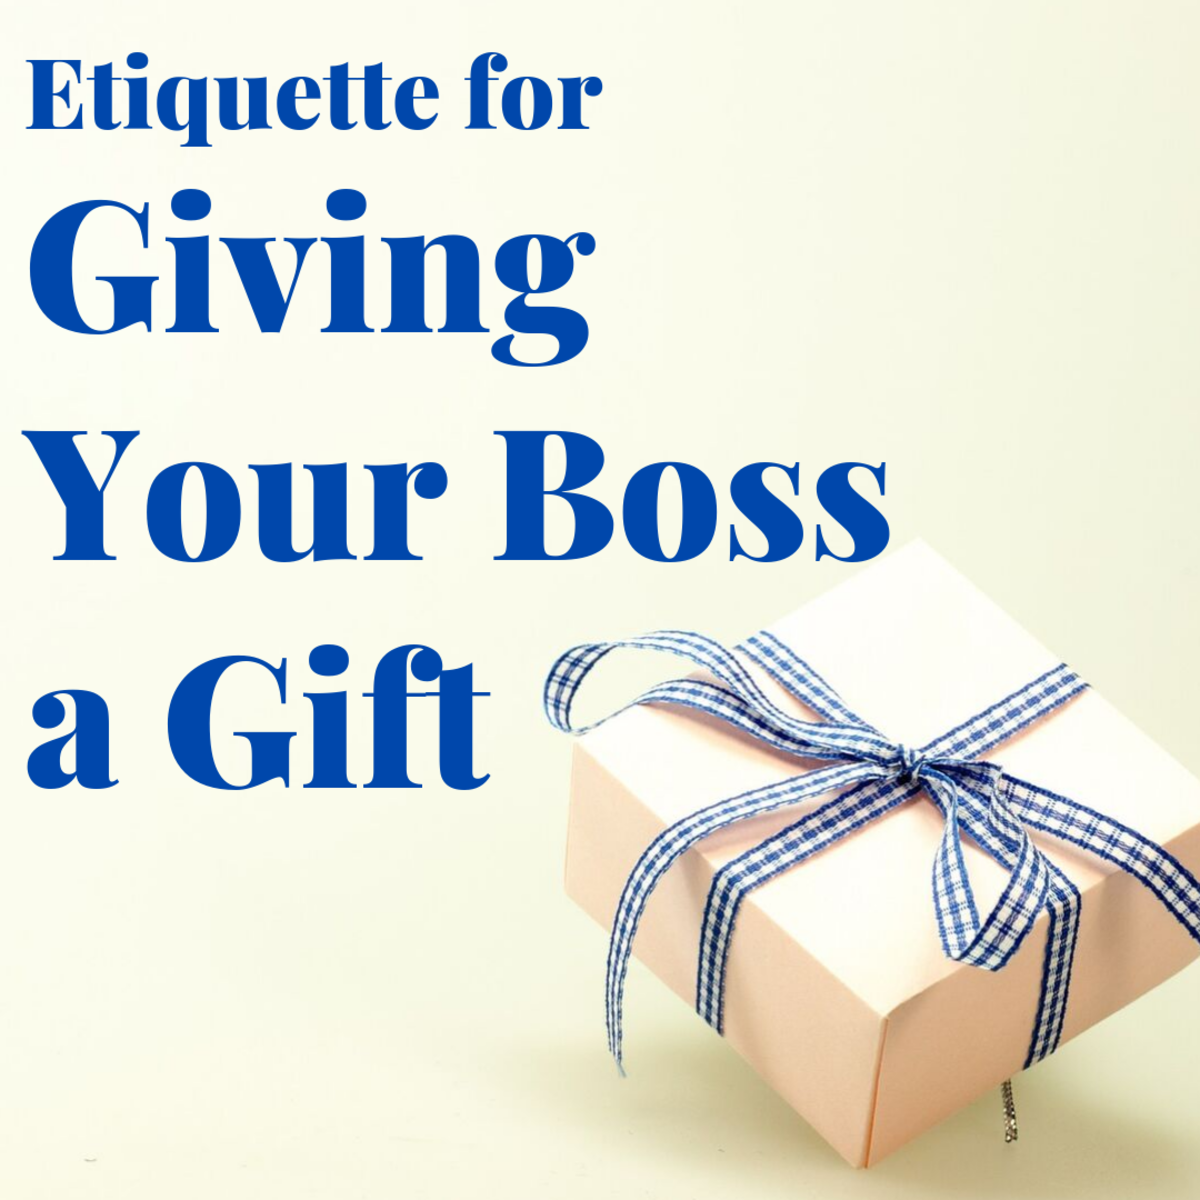 What is the proper etiquette for giving your boss a gift at work?